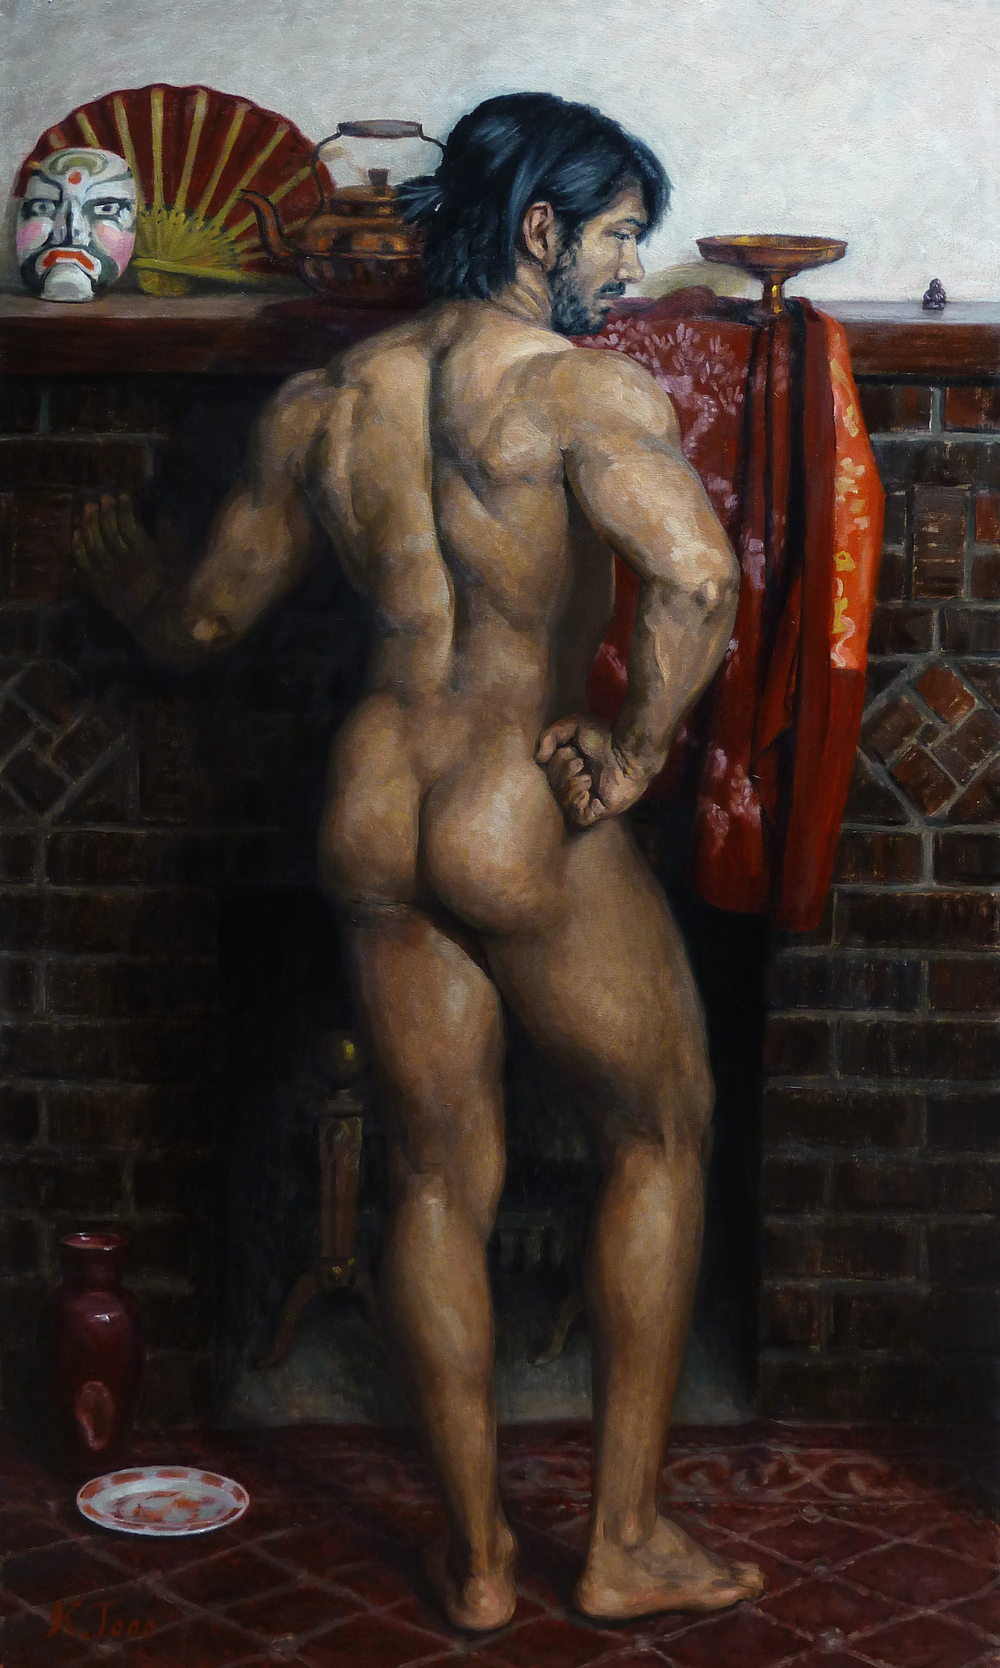 """Arrangement in Brick and Cherry"" (2015), oil on canvas, 40"" x 24"""